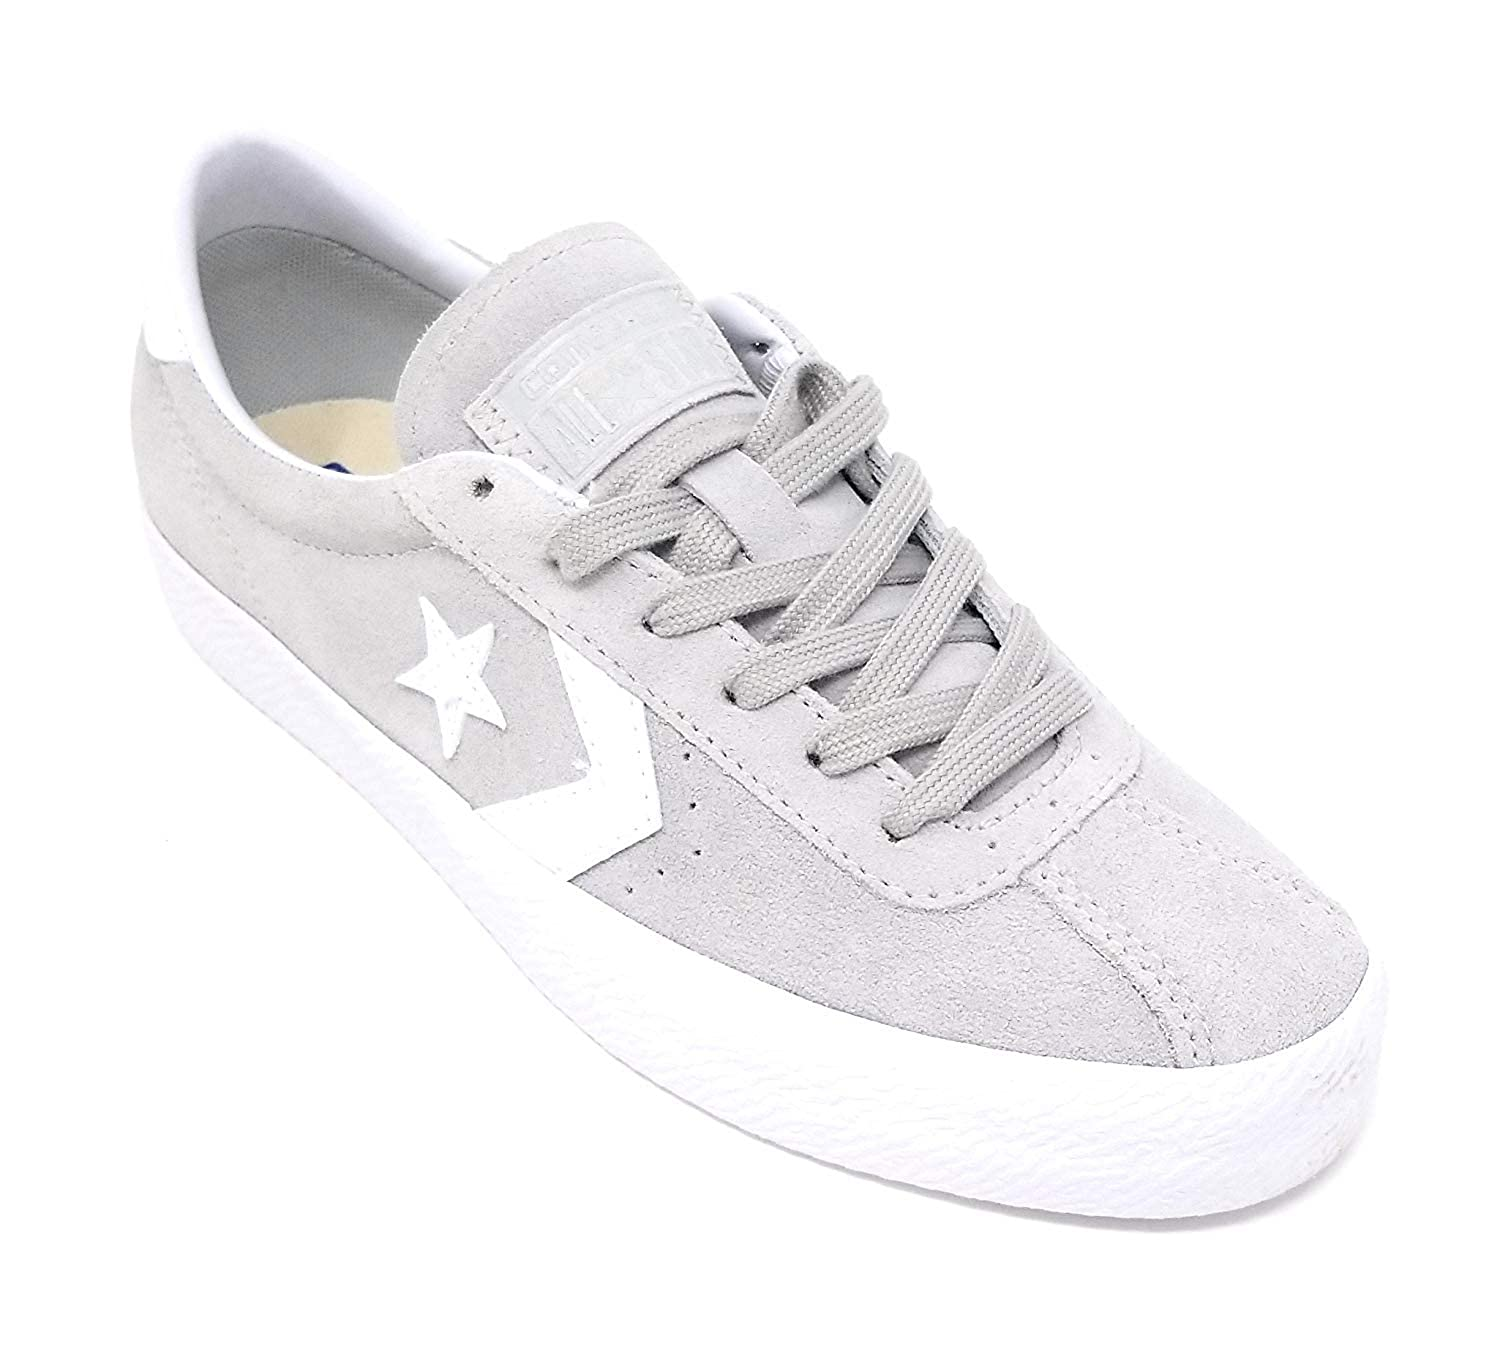 2converse breakpoint